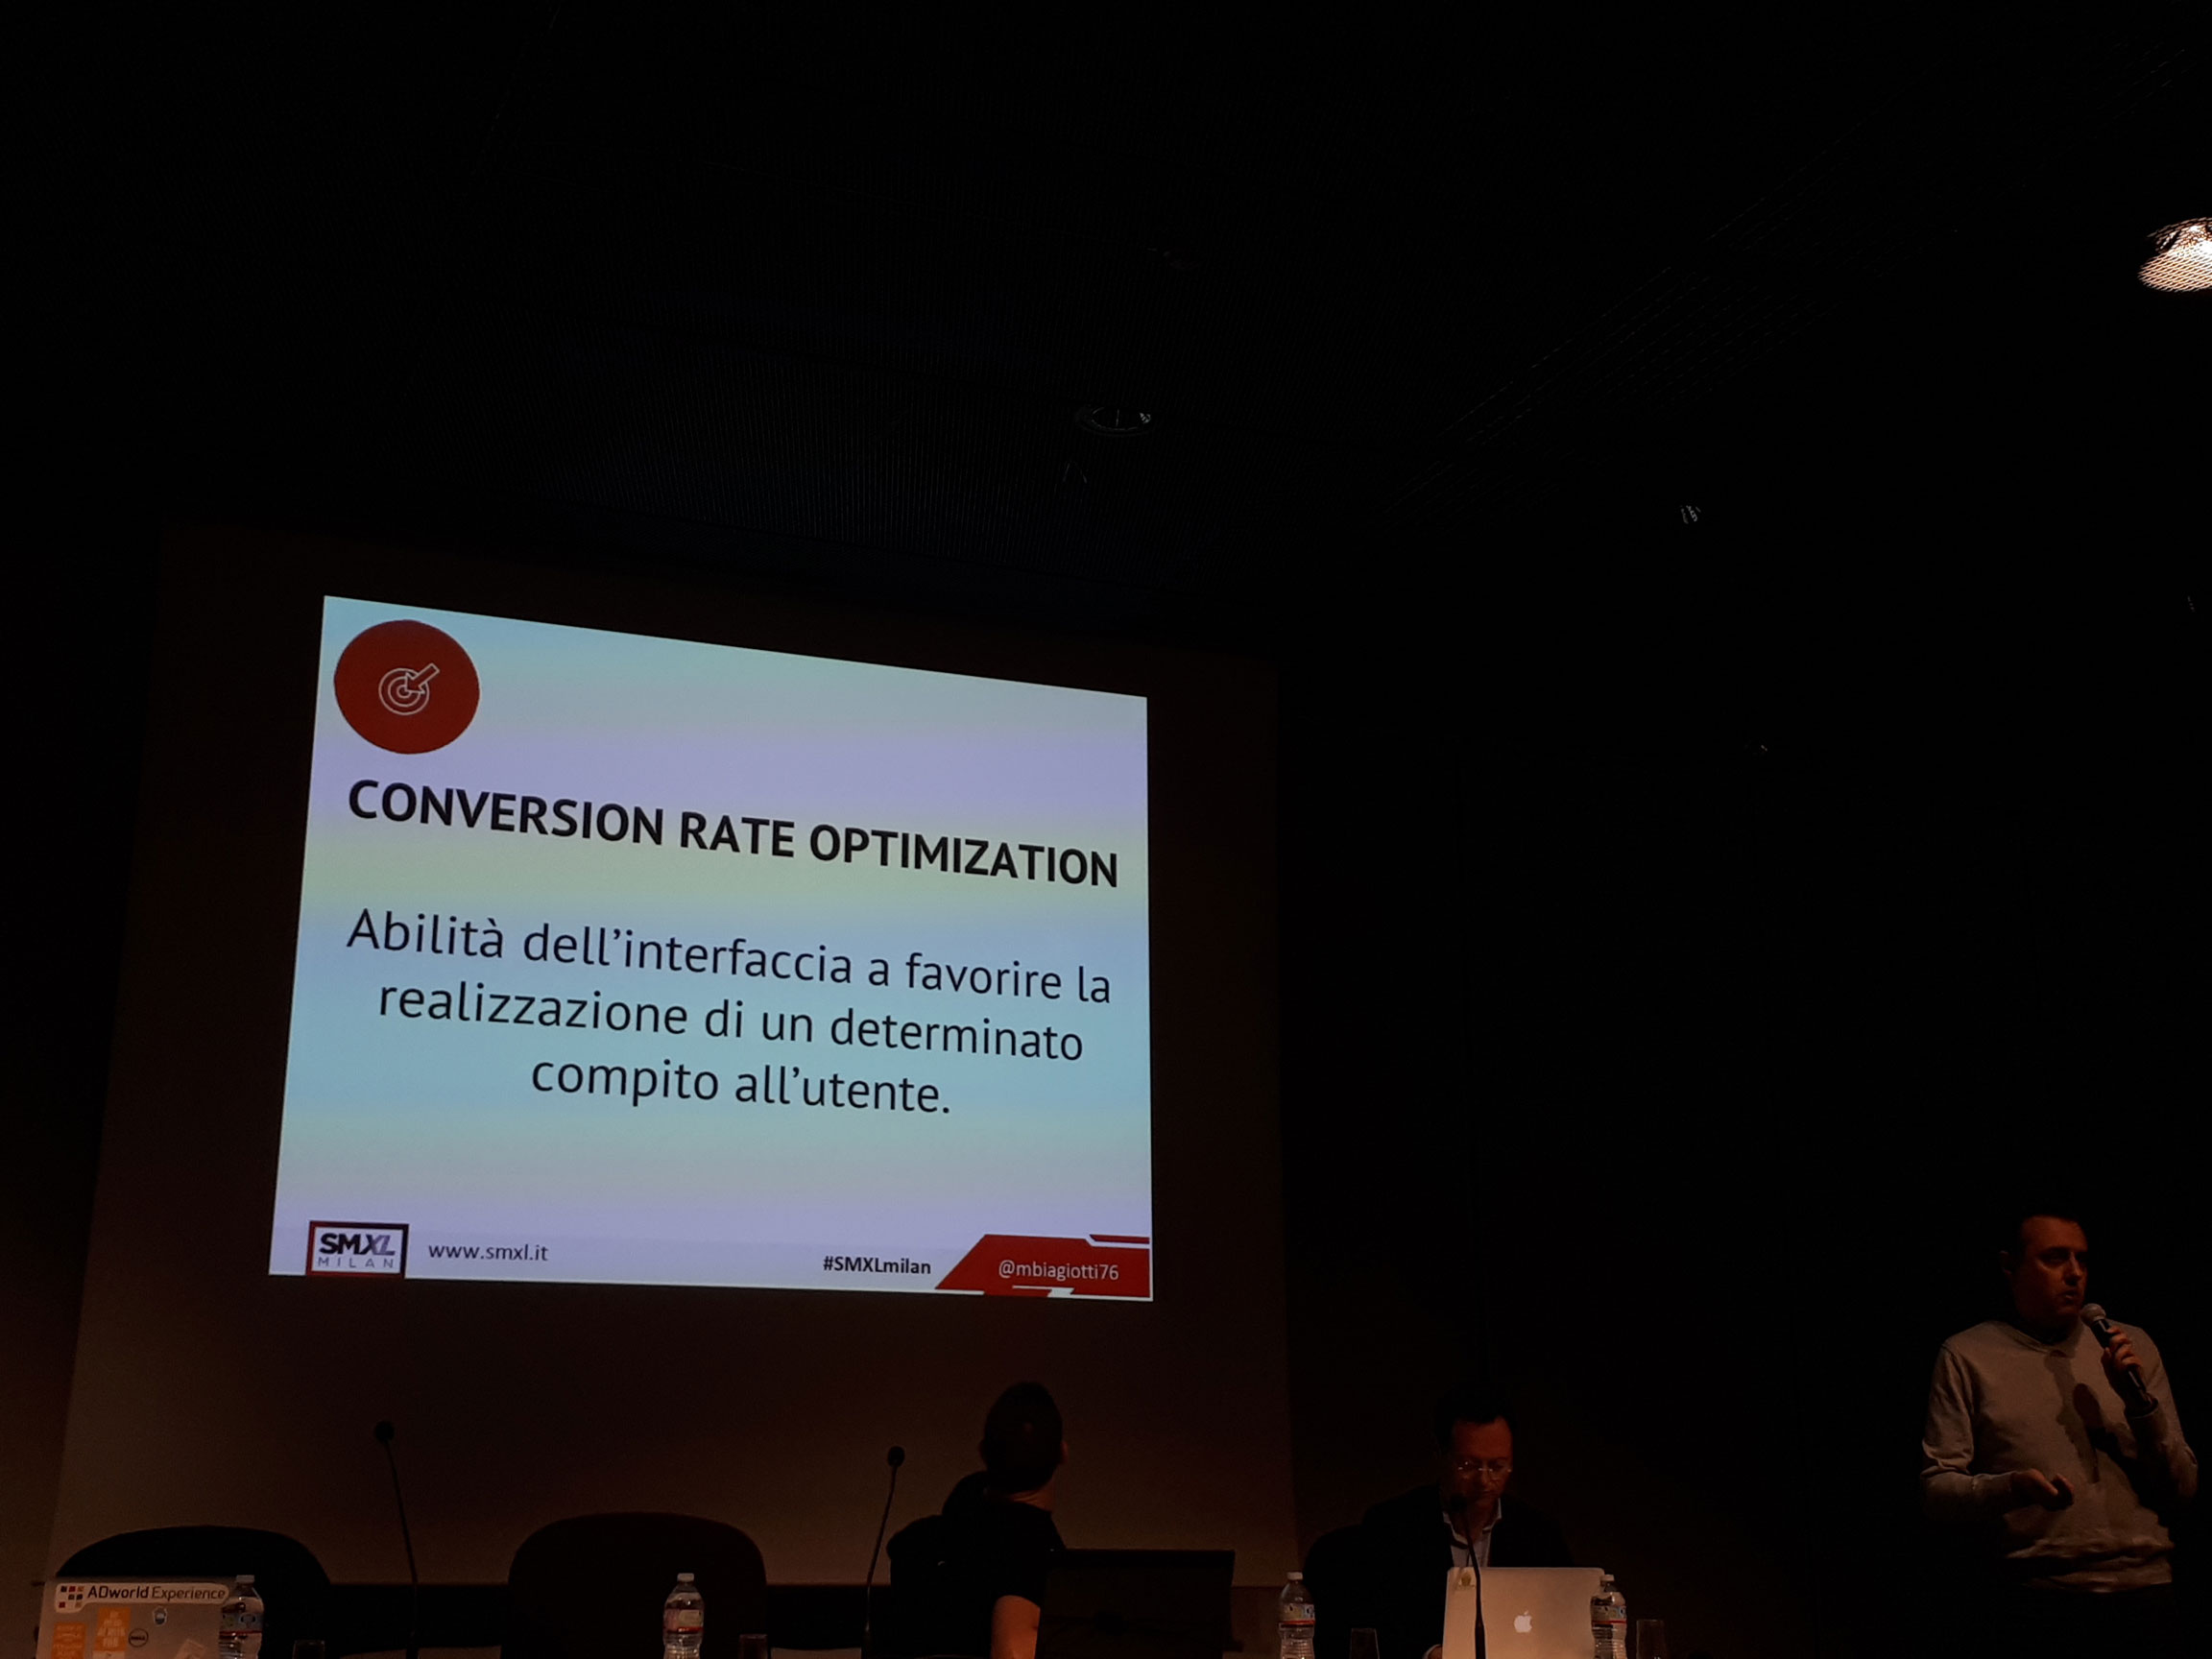 Marco Biagiotti illustra la conversion rate optimization